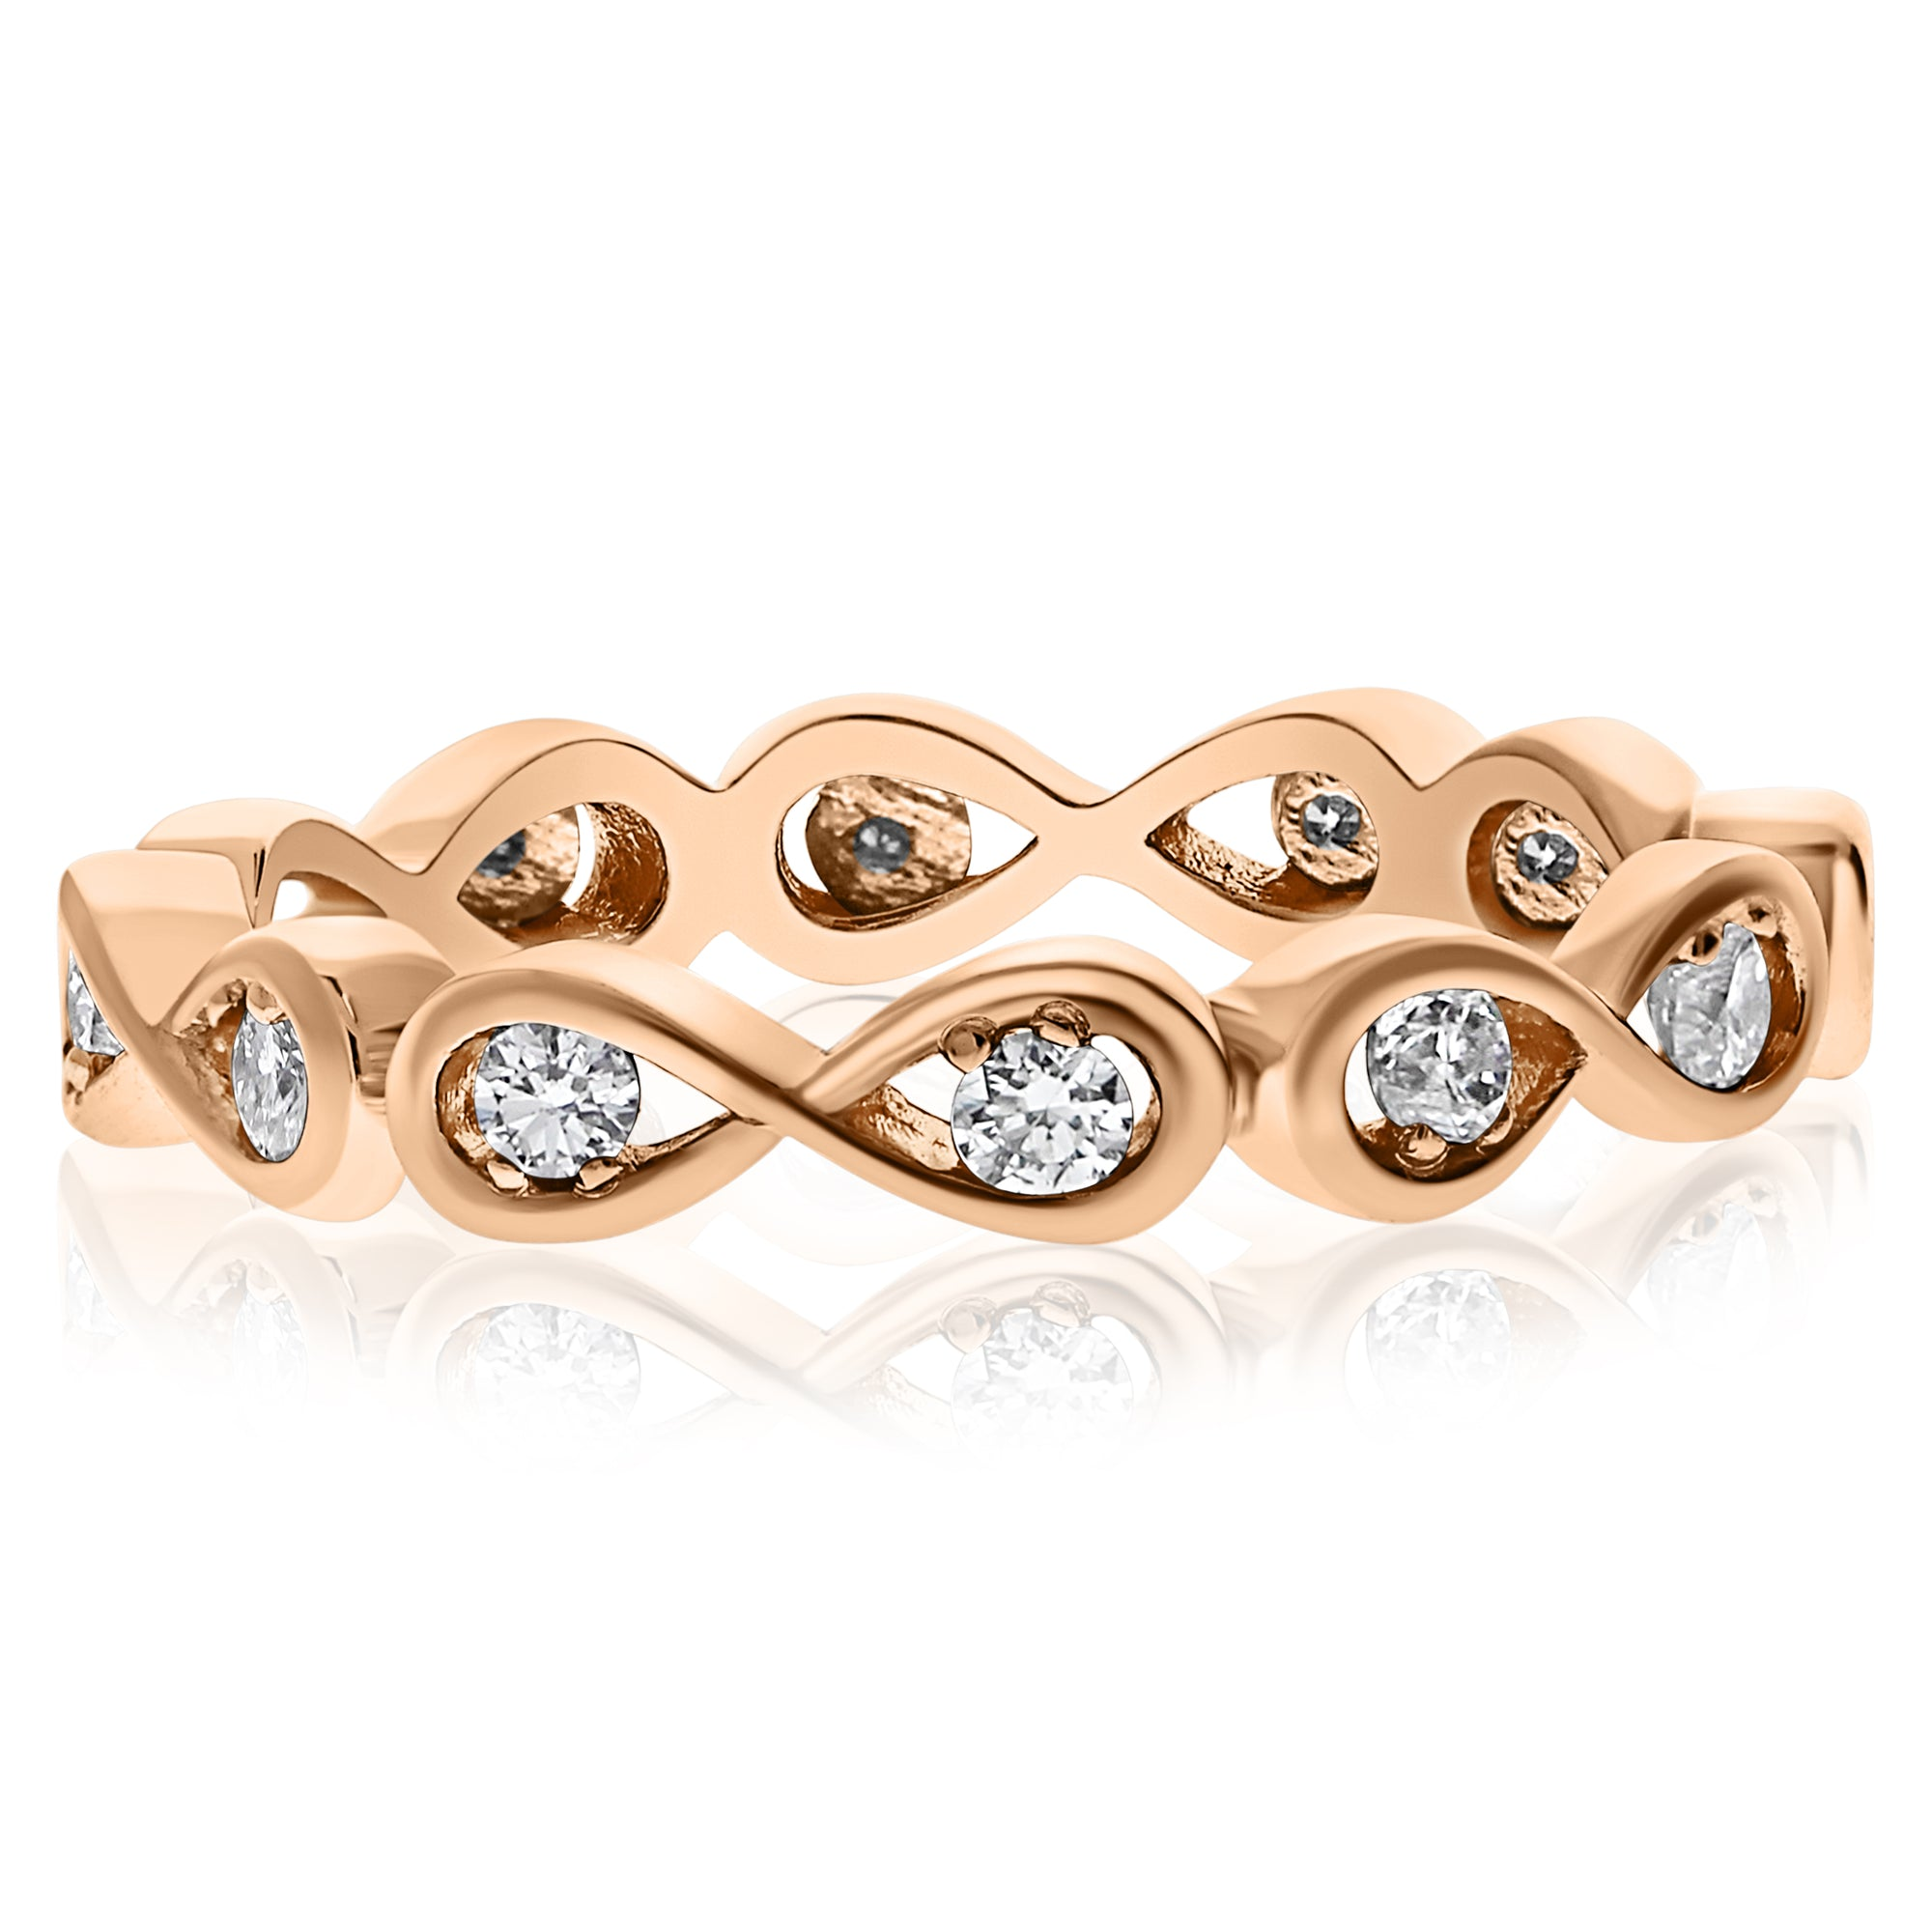 dp band silver uk engraved rose jewellery co gold infinity amazon icon sterling ring